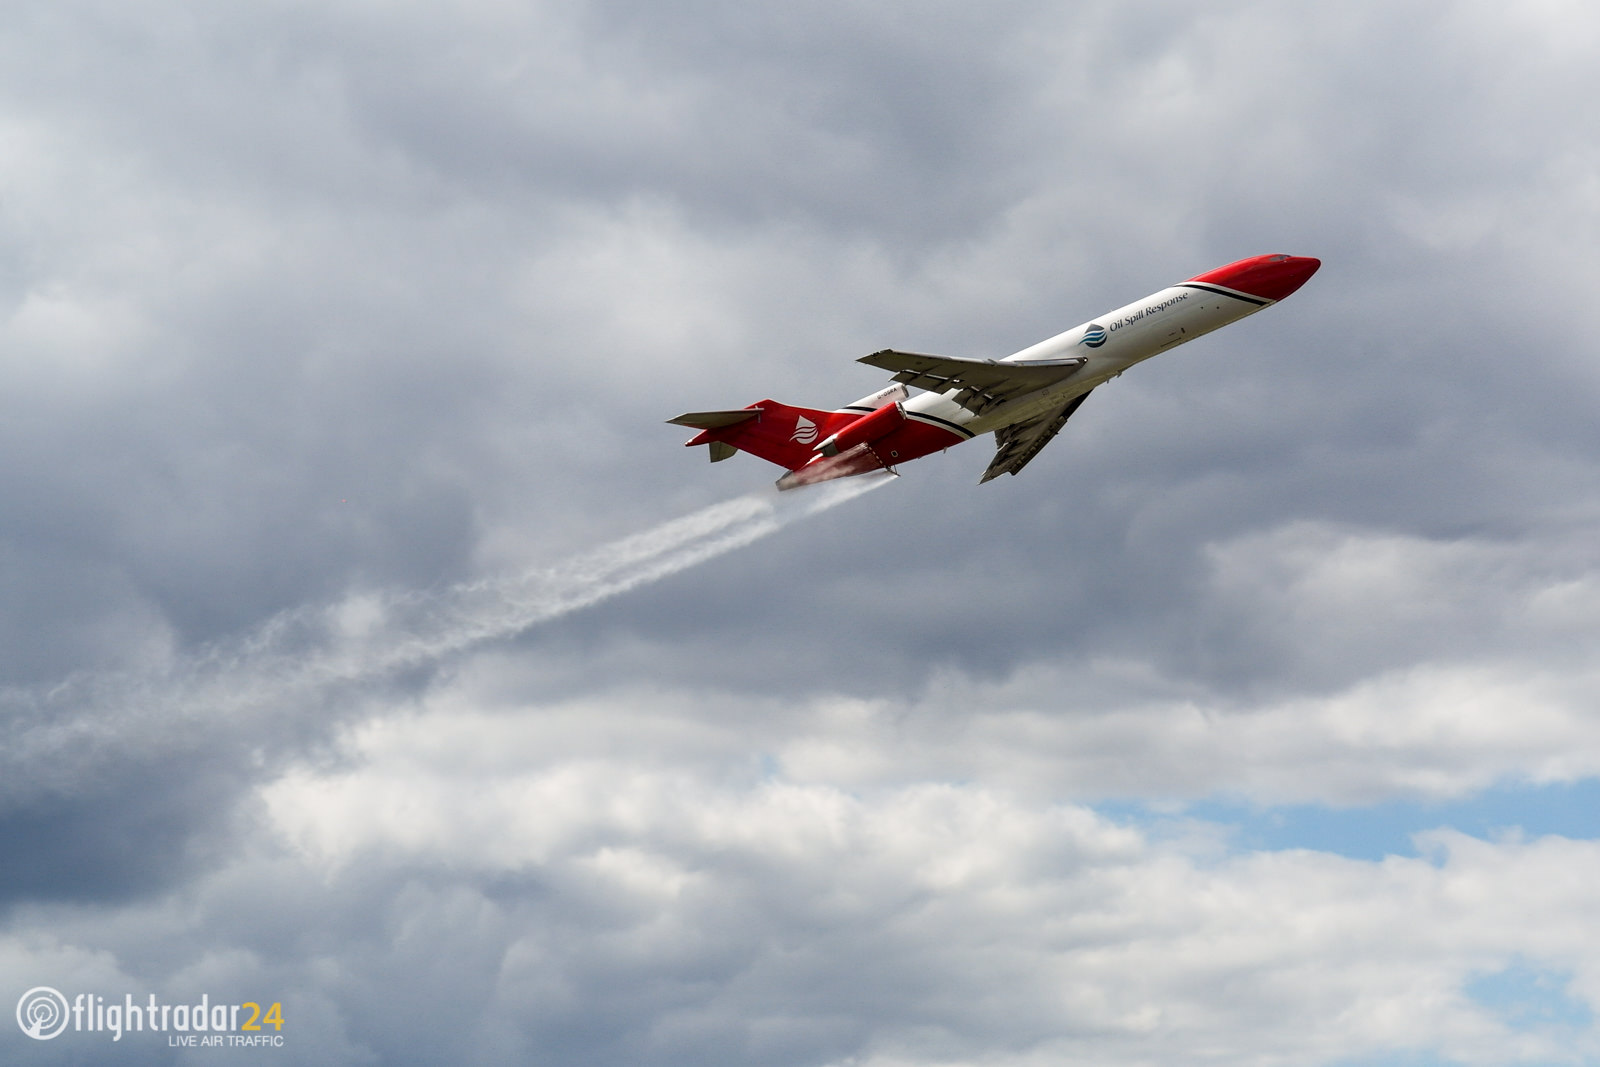 The 727 Oil Spill Response Aircraft demonstration